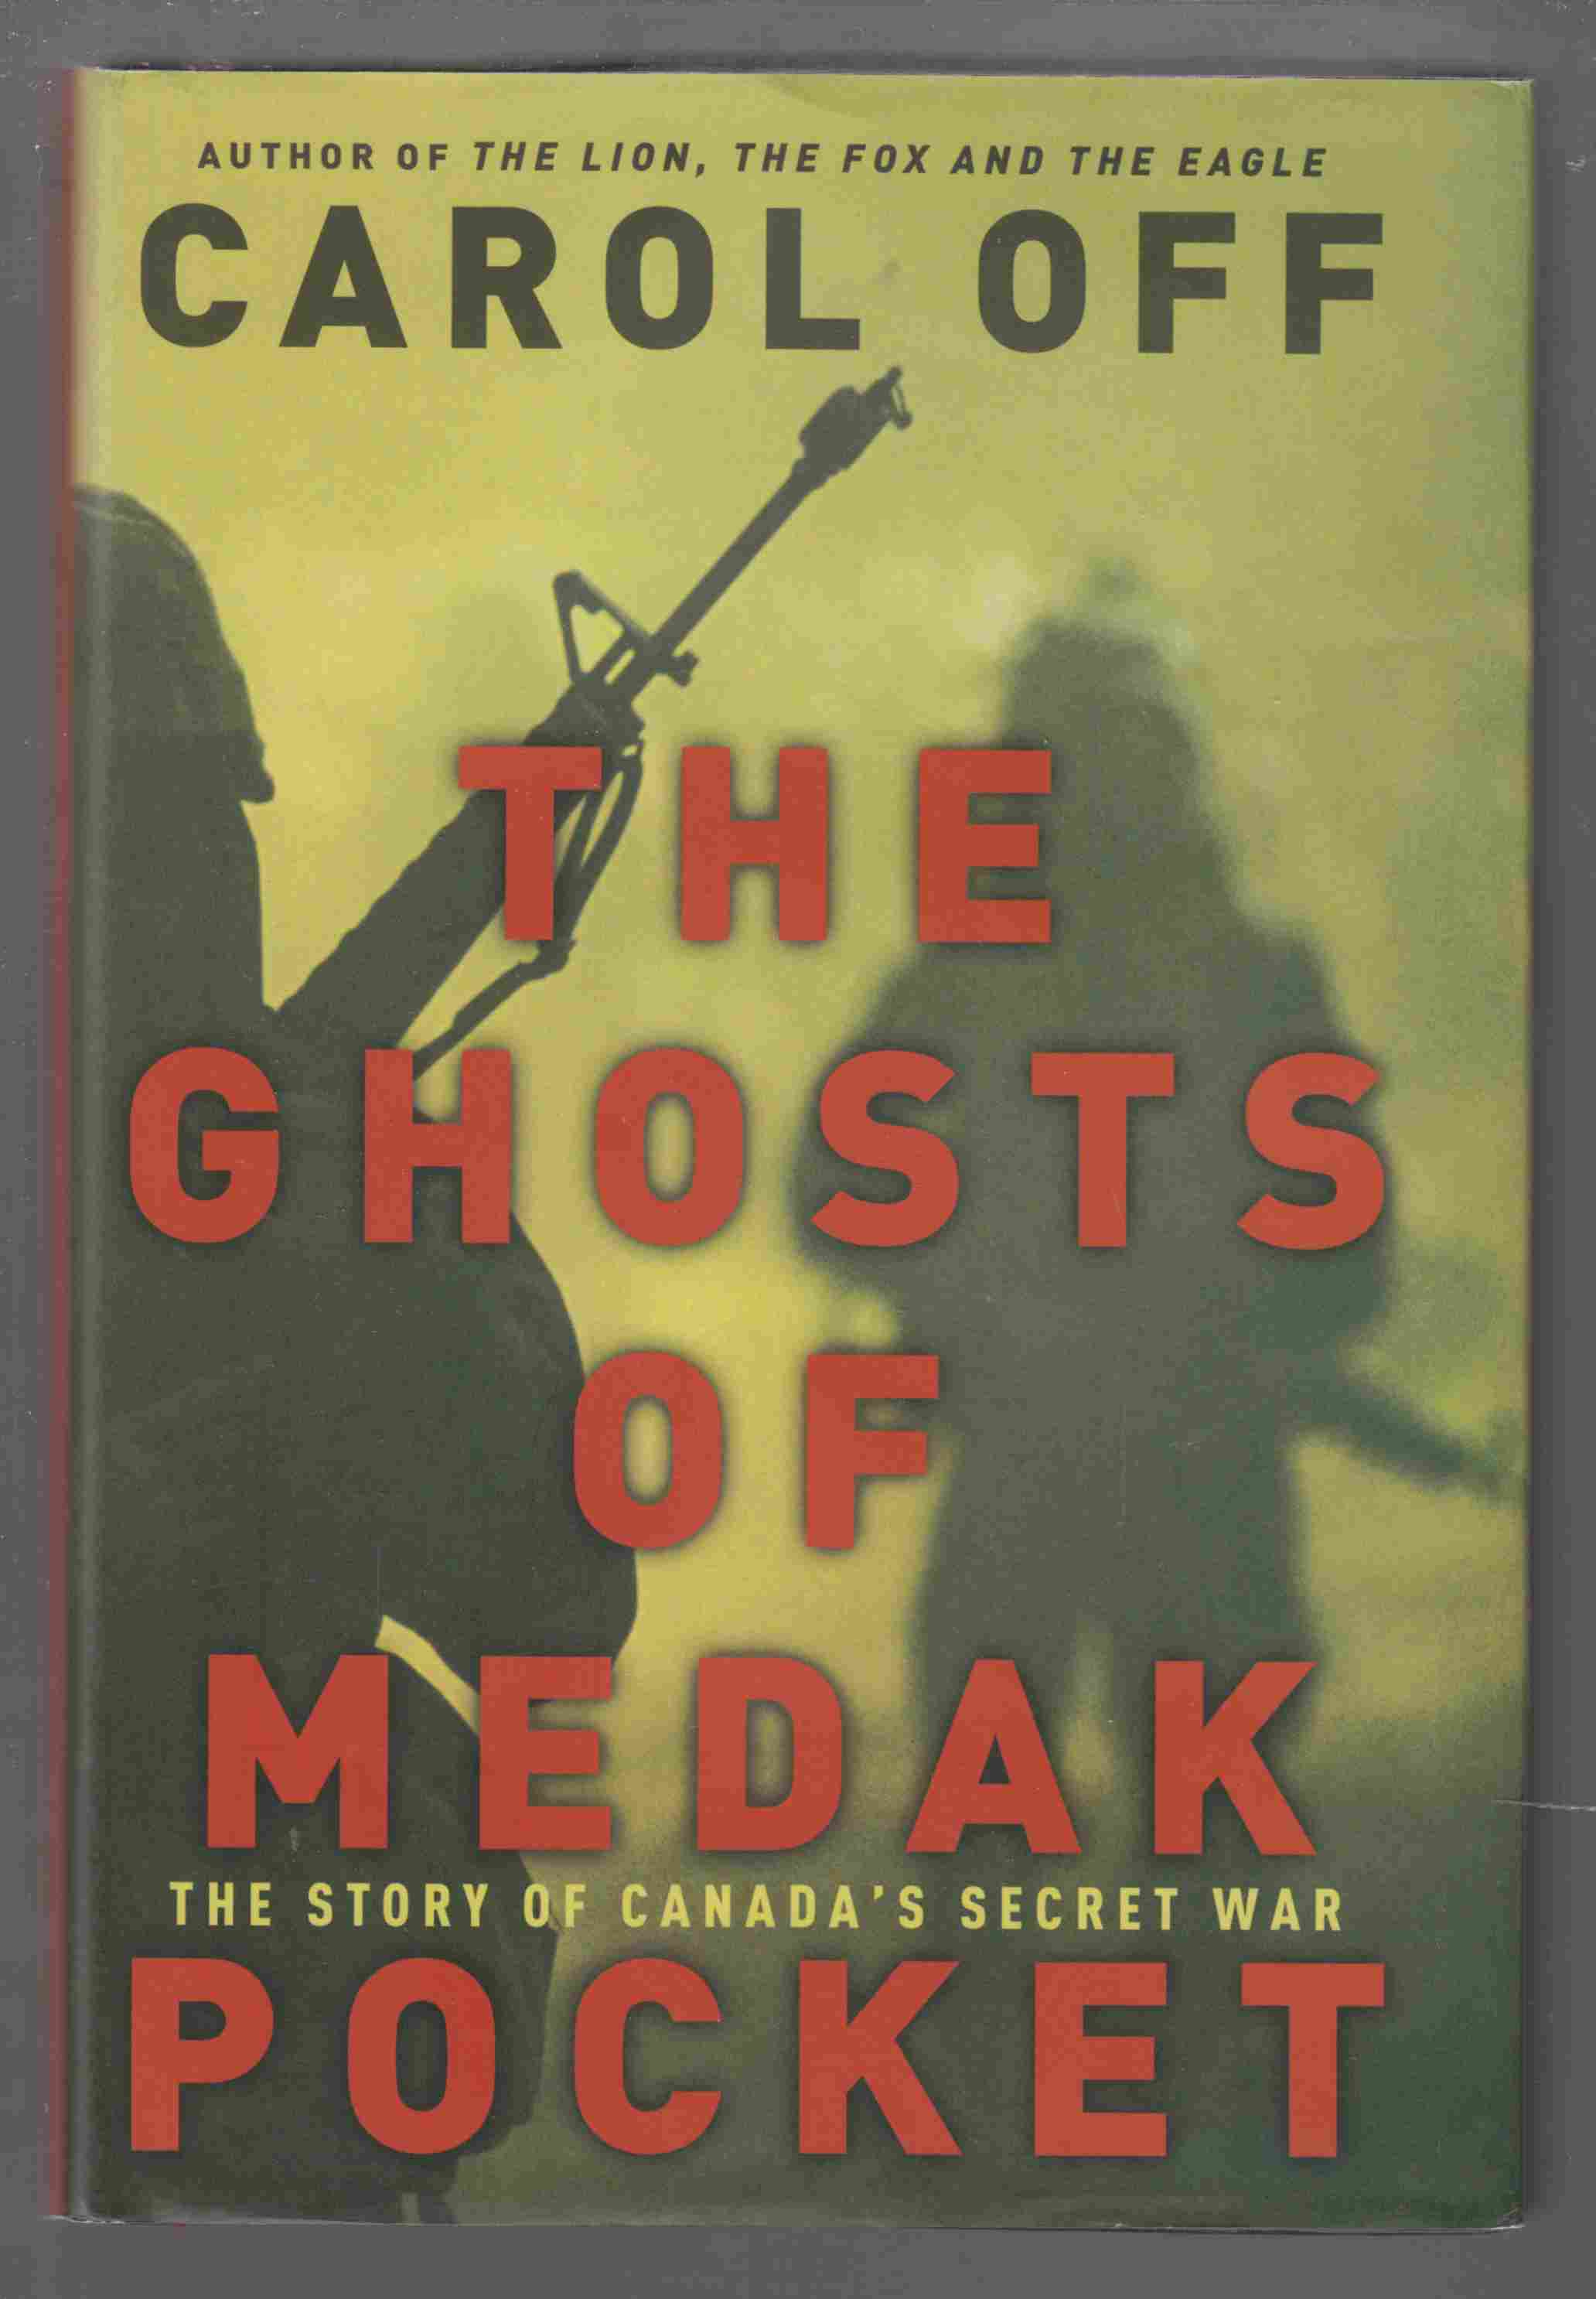 Image for The Ghosts of Medak Pocket: the Story of Canada's Secret War